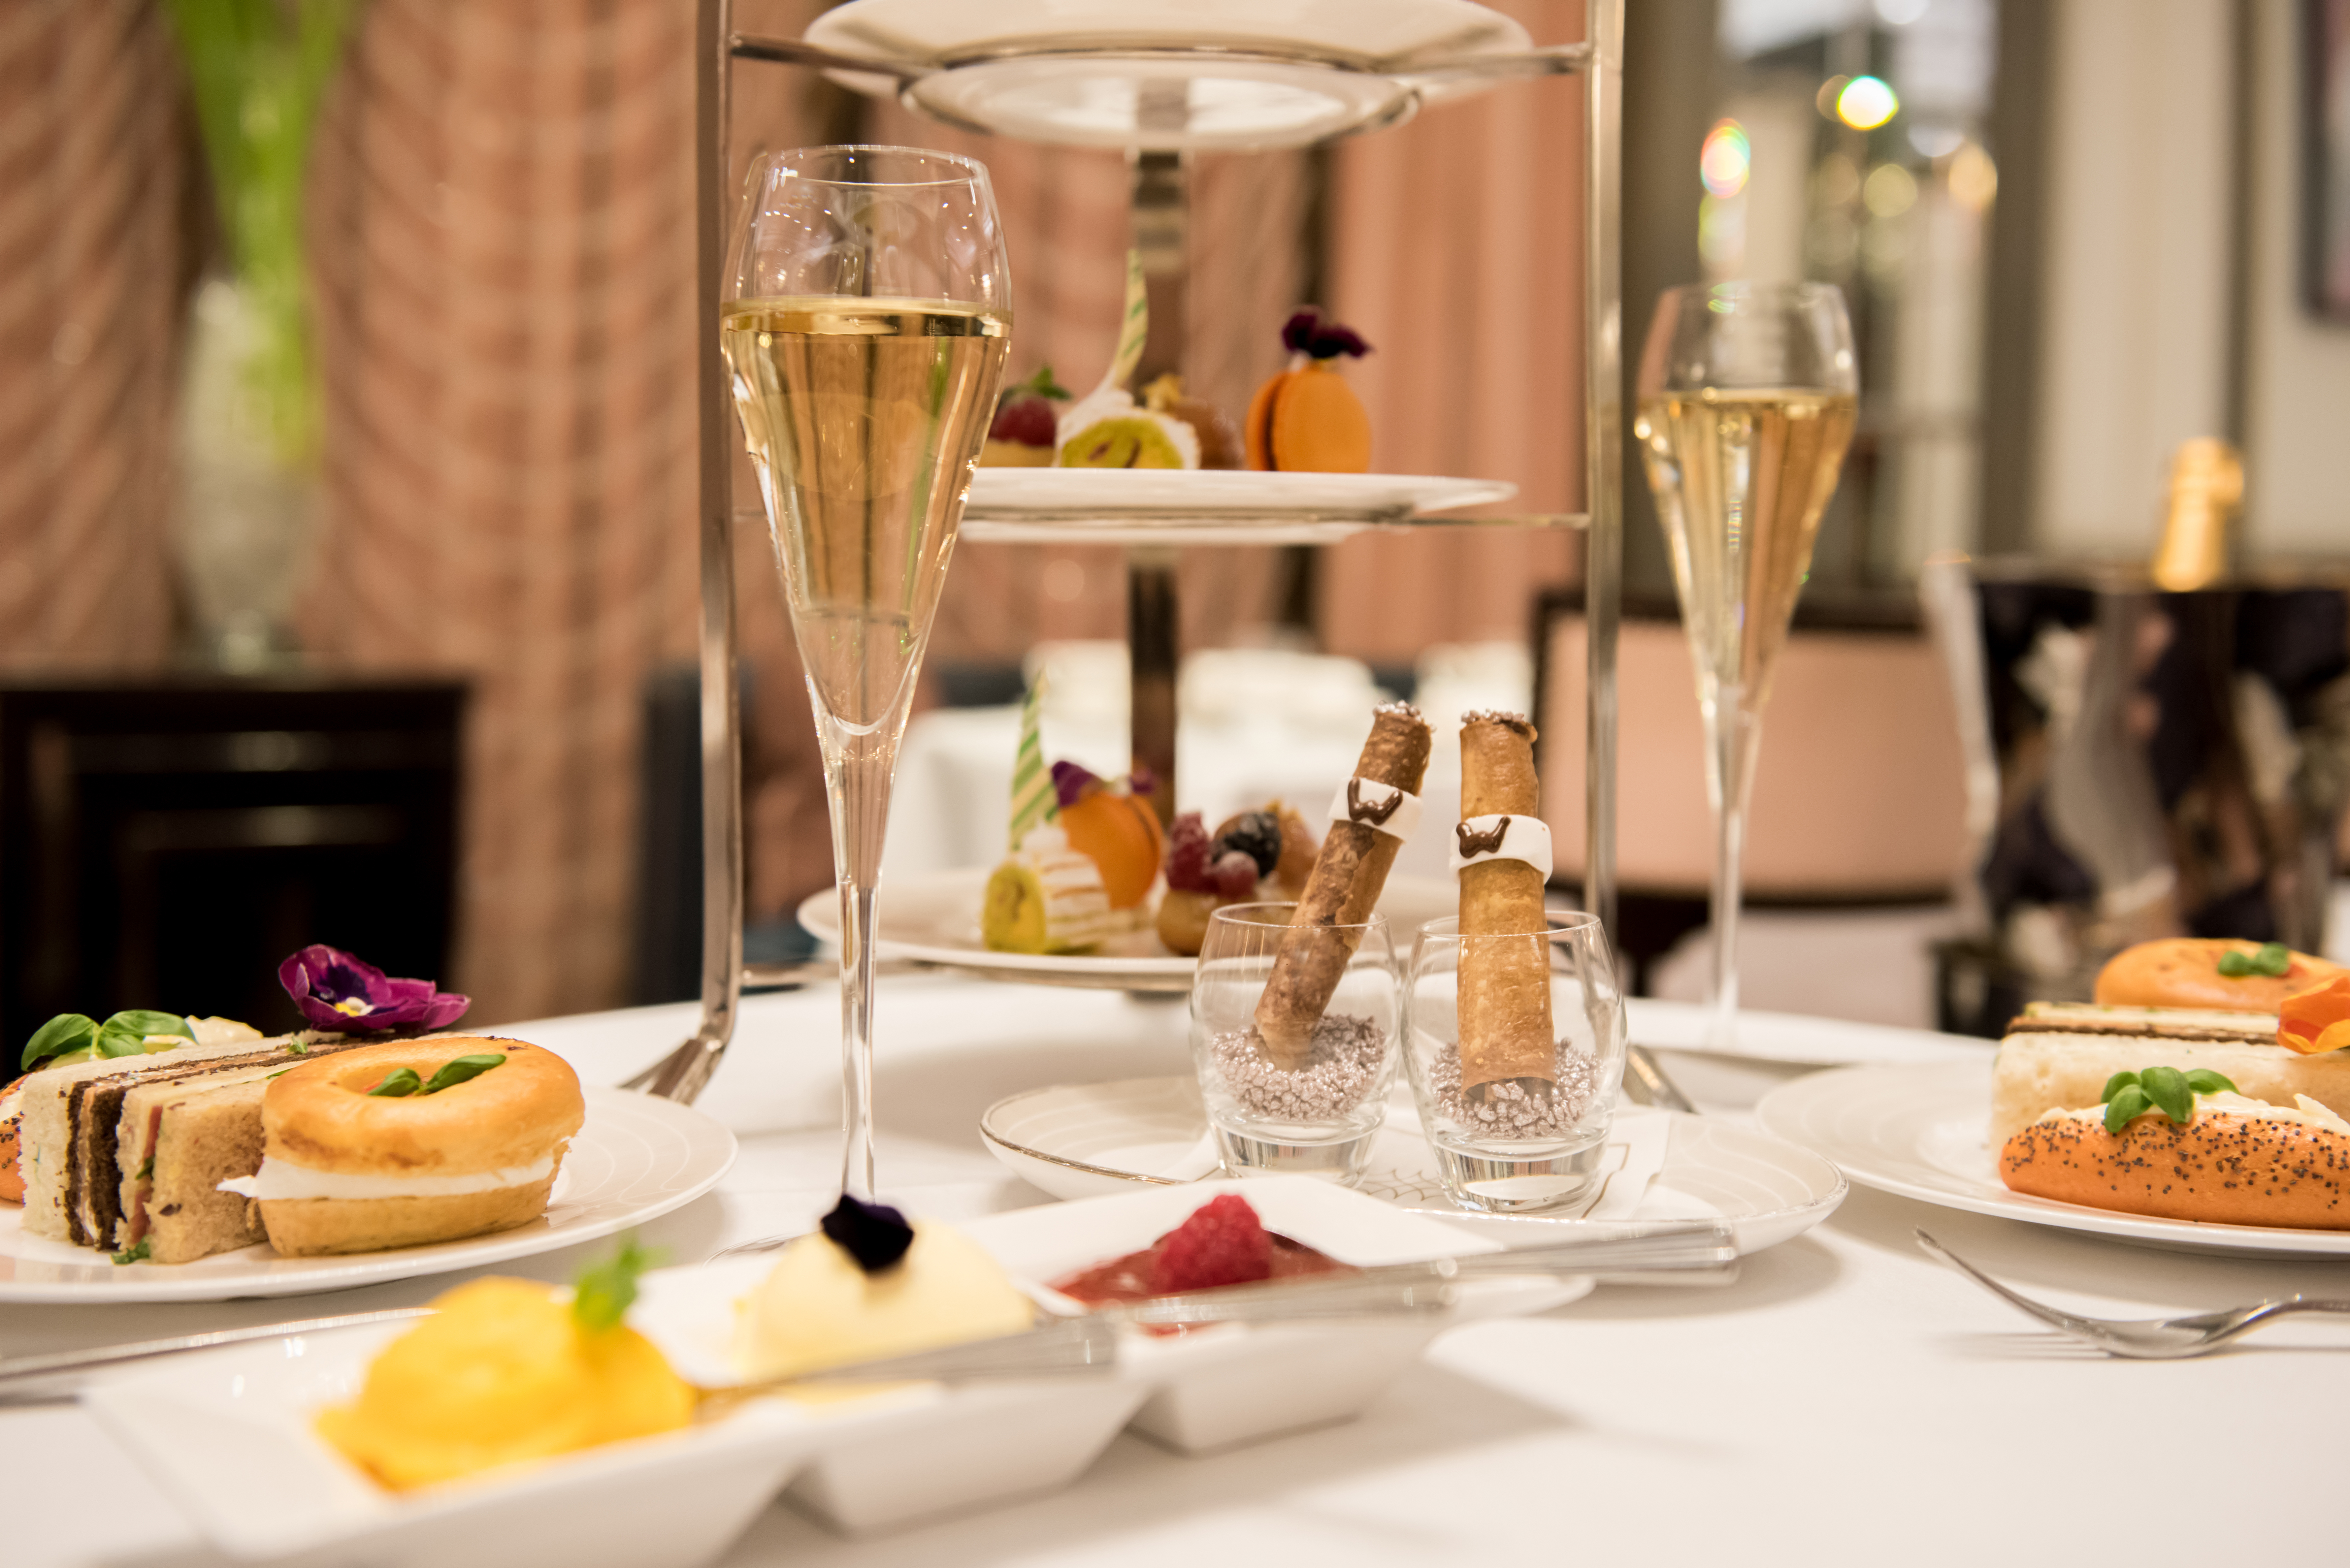 Afternoon Tea at The Wellesley